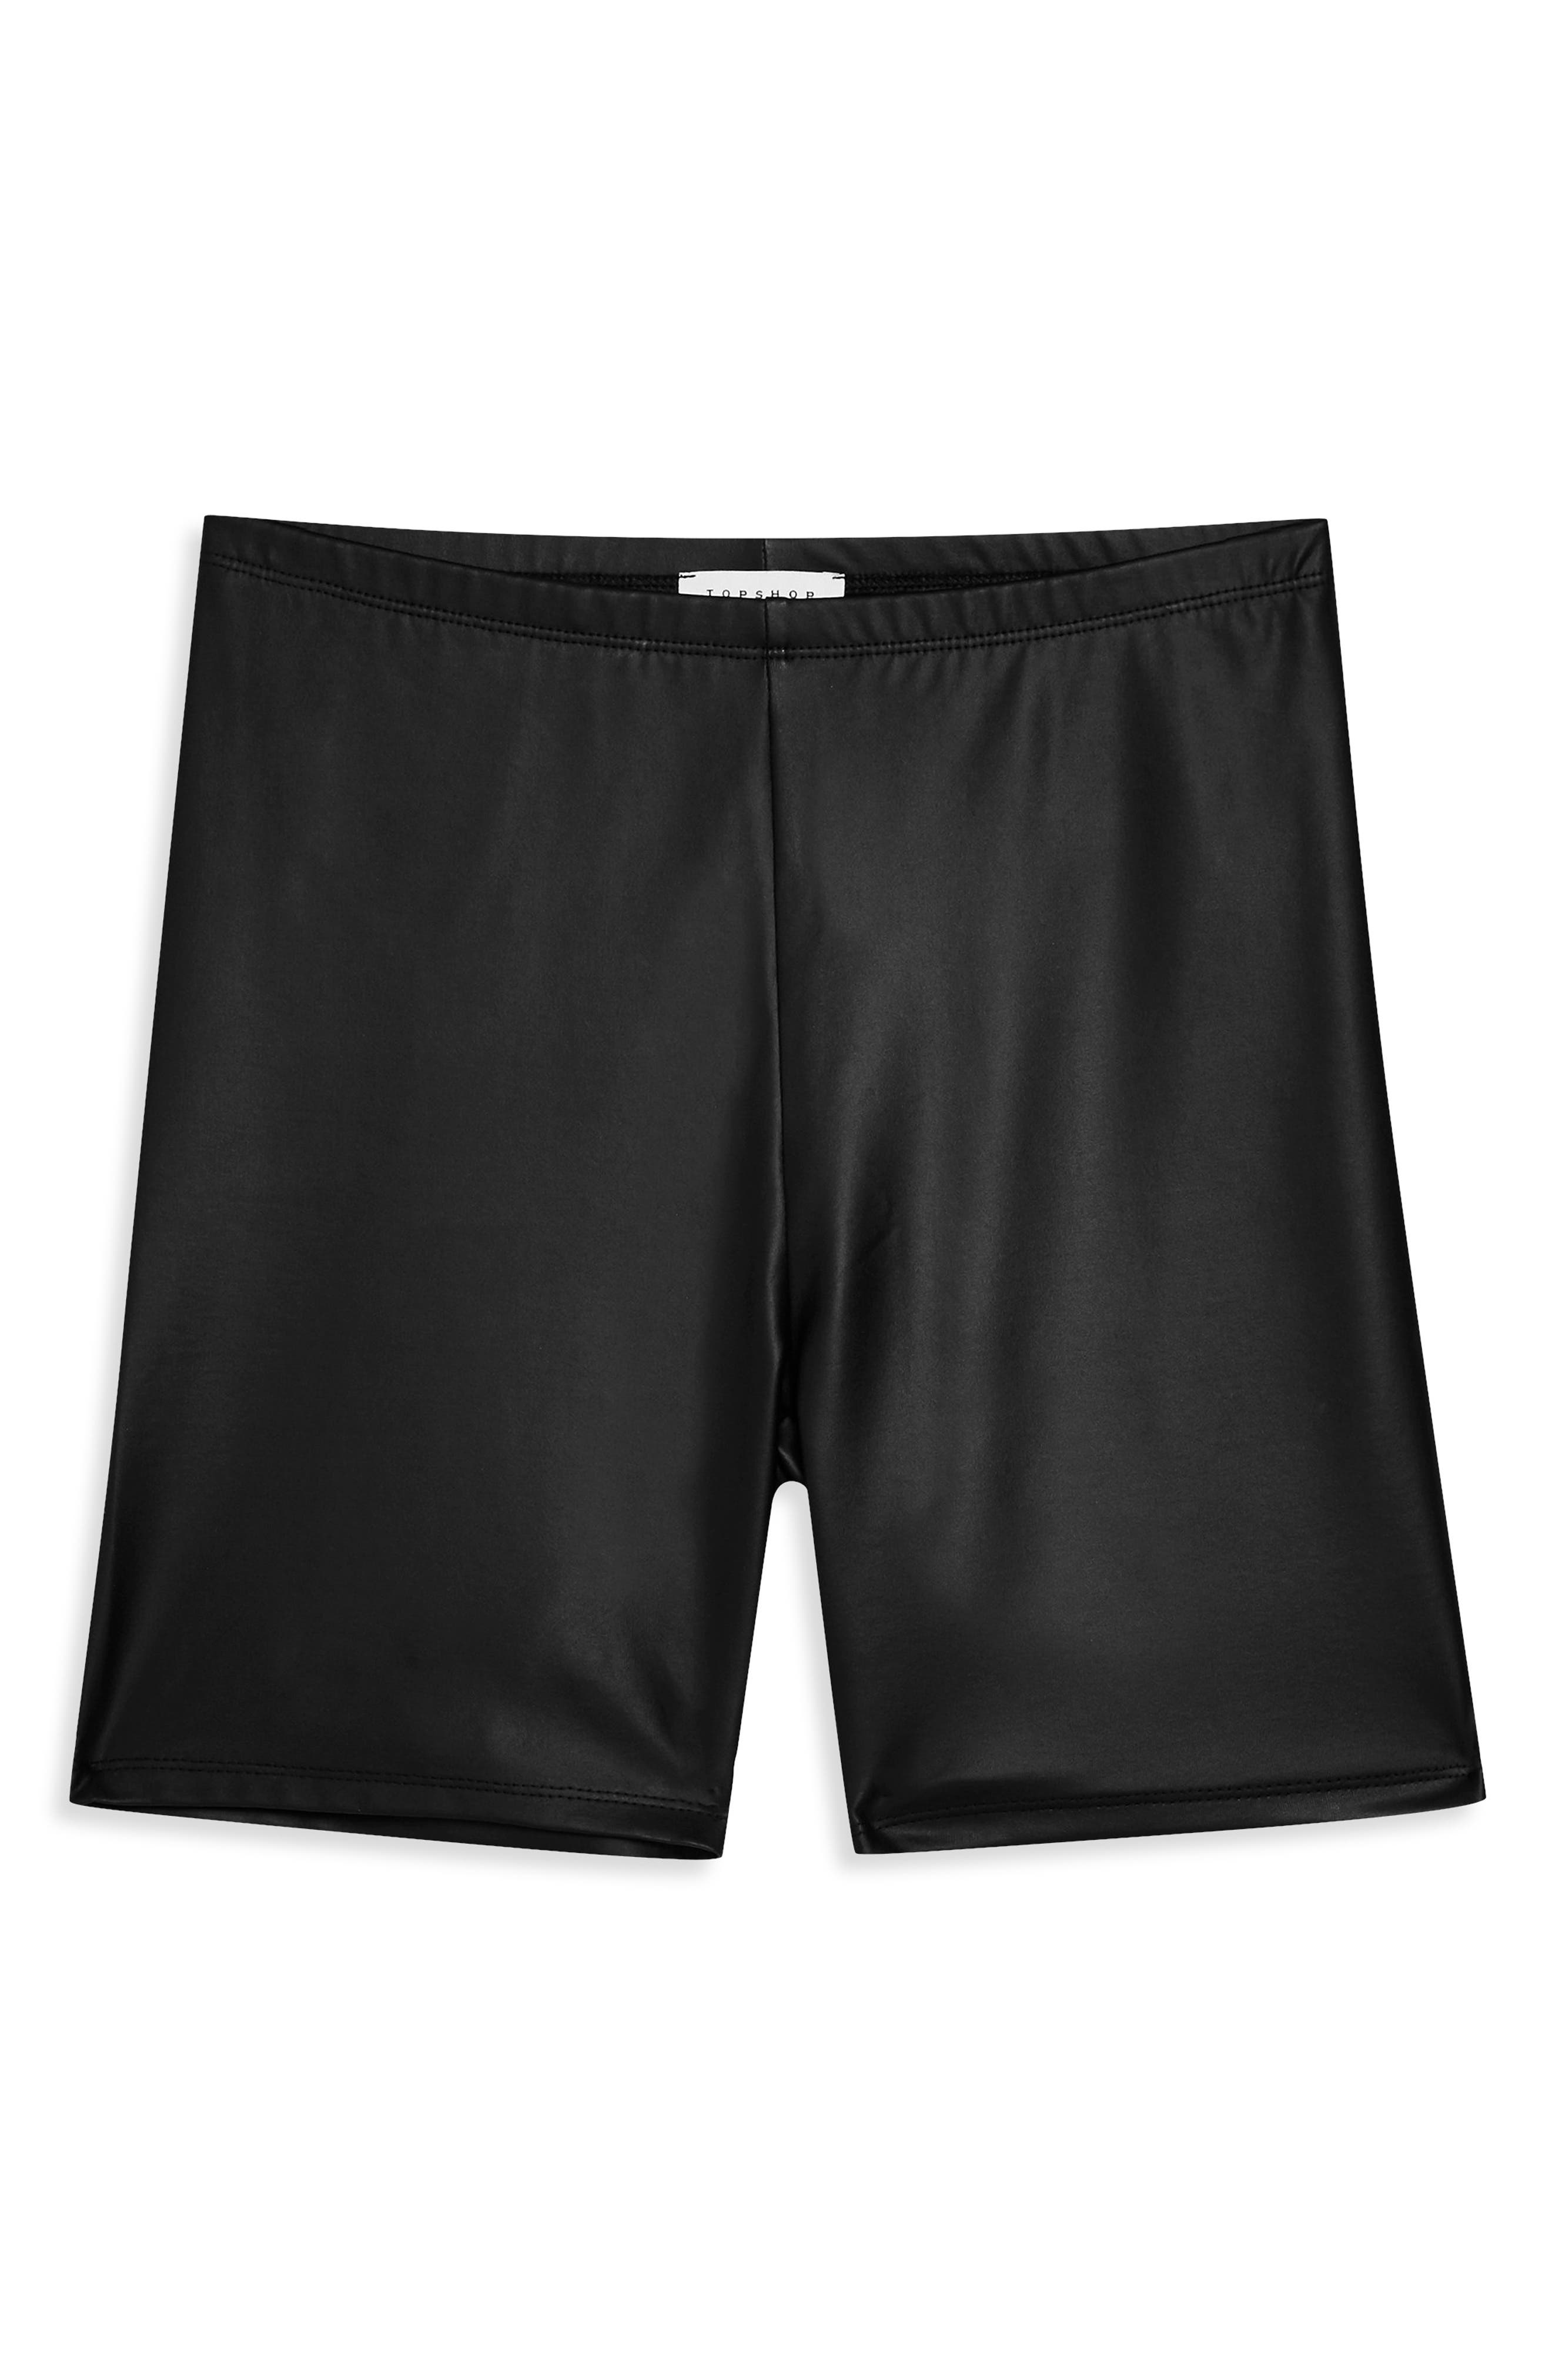 TOPSHOP,                             Faux Leather Cycling Shorts,                             Alternate thumbnail 3, color,                             BLACK